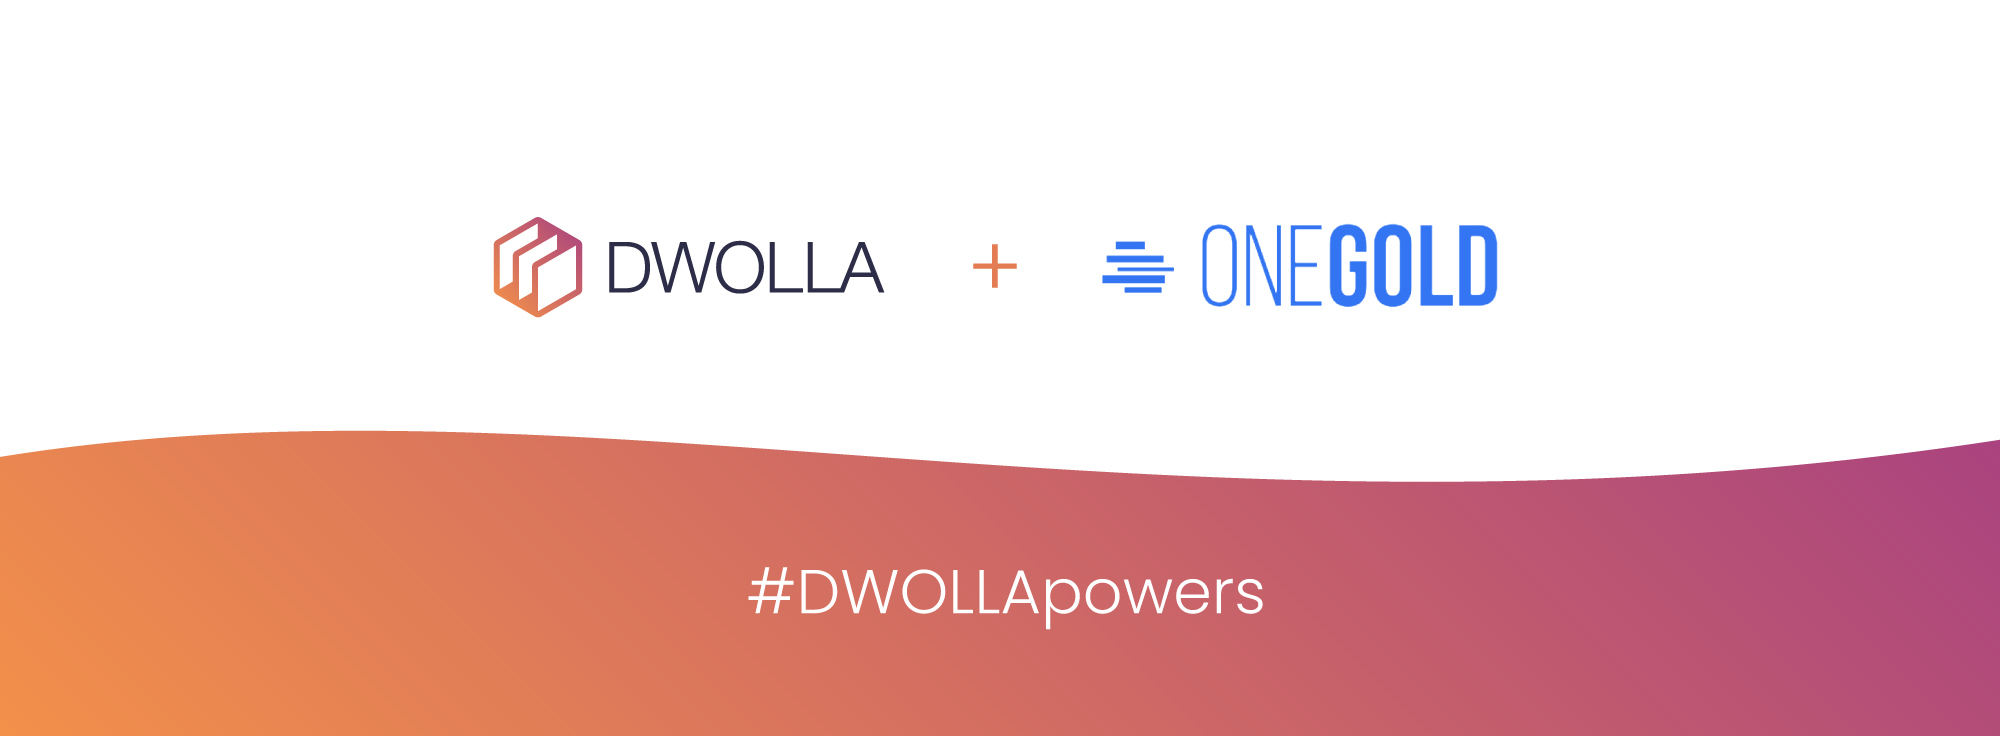 OneGold Announces AutoInvest Powered by Payment Partnership with Dwolla